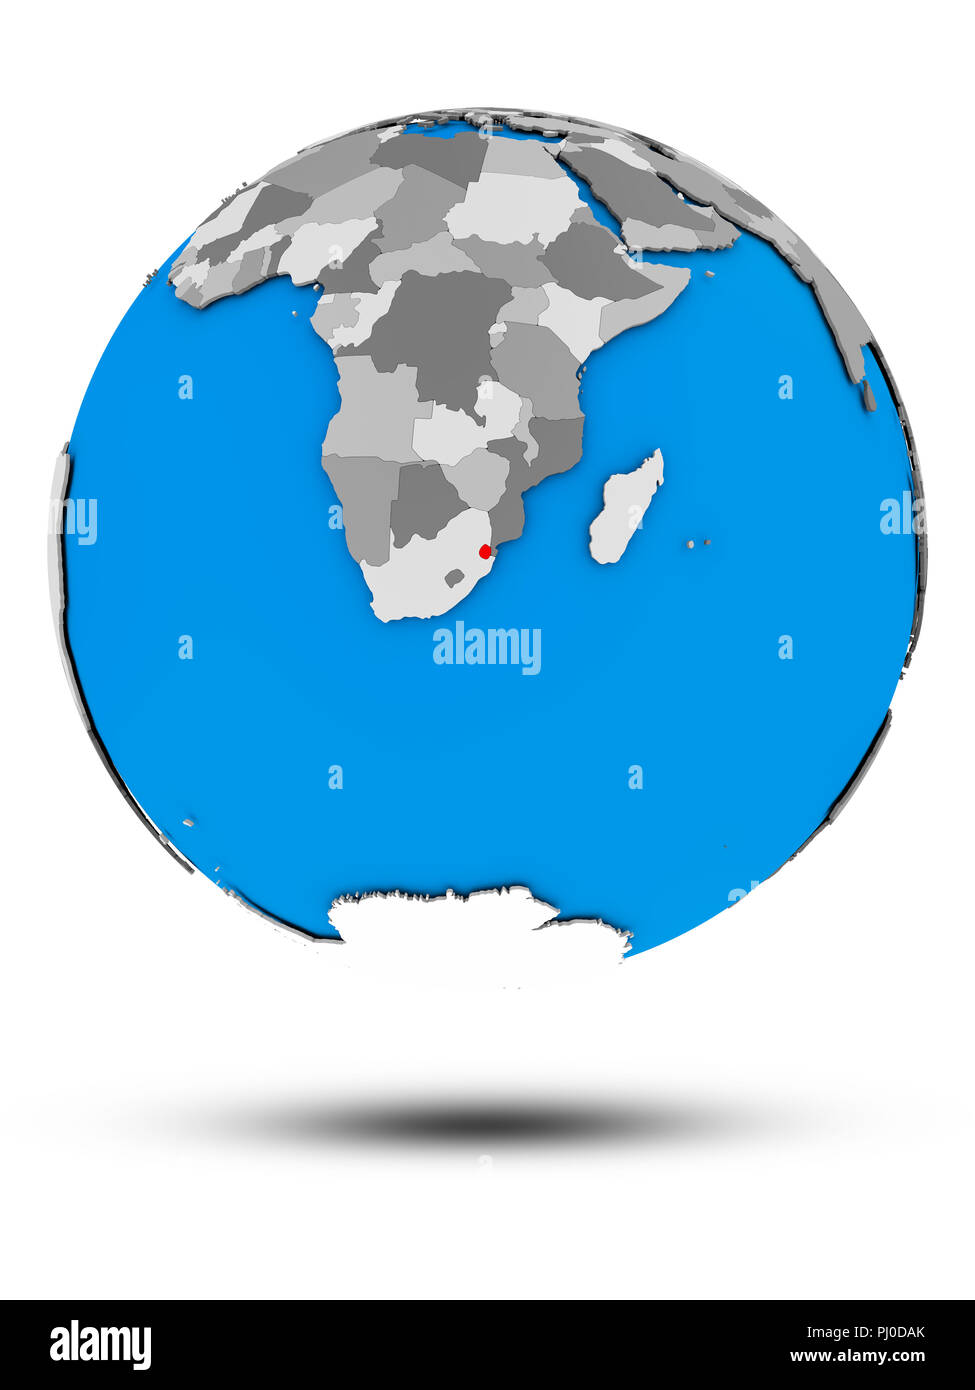 Swaziland on political globe with shadow isolated on white background. 3D illustration. Stock Photo